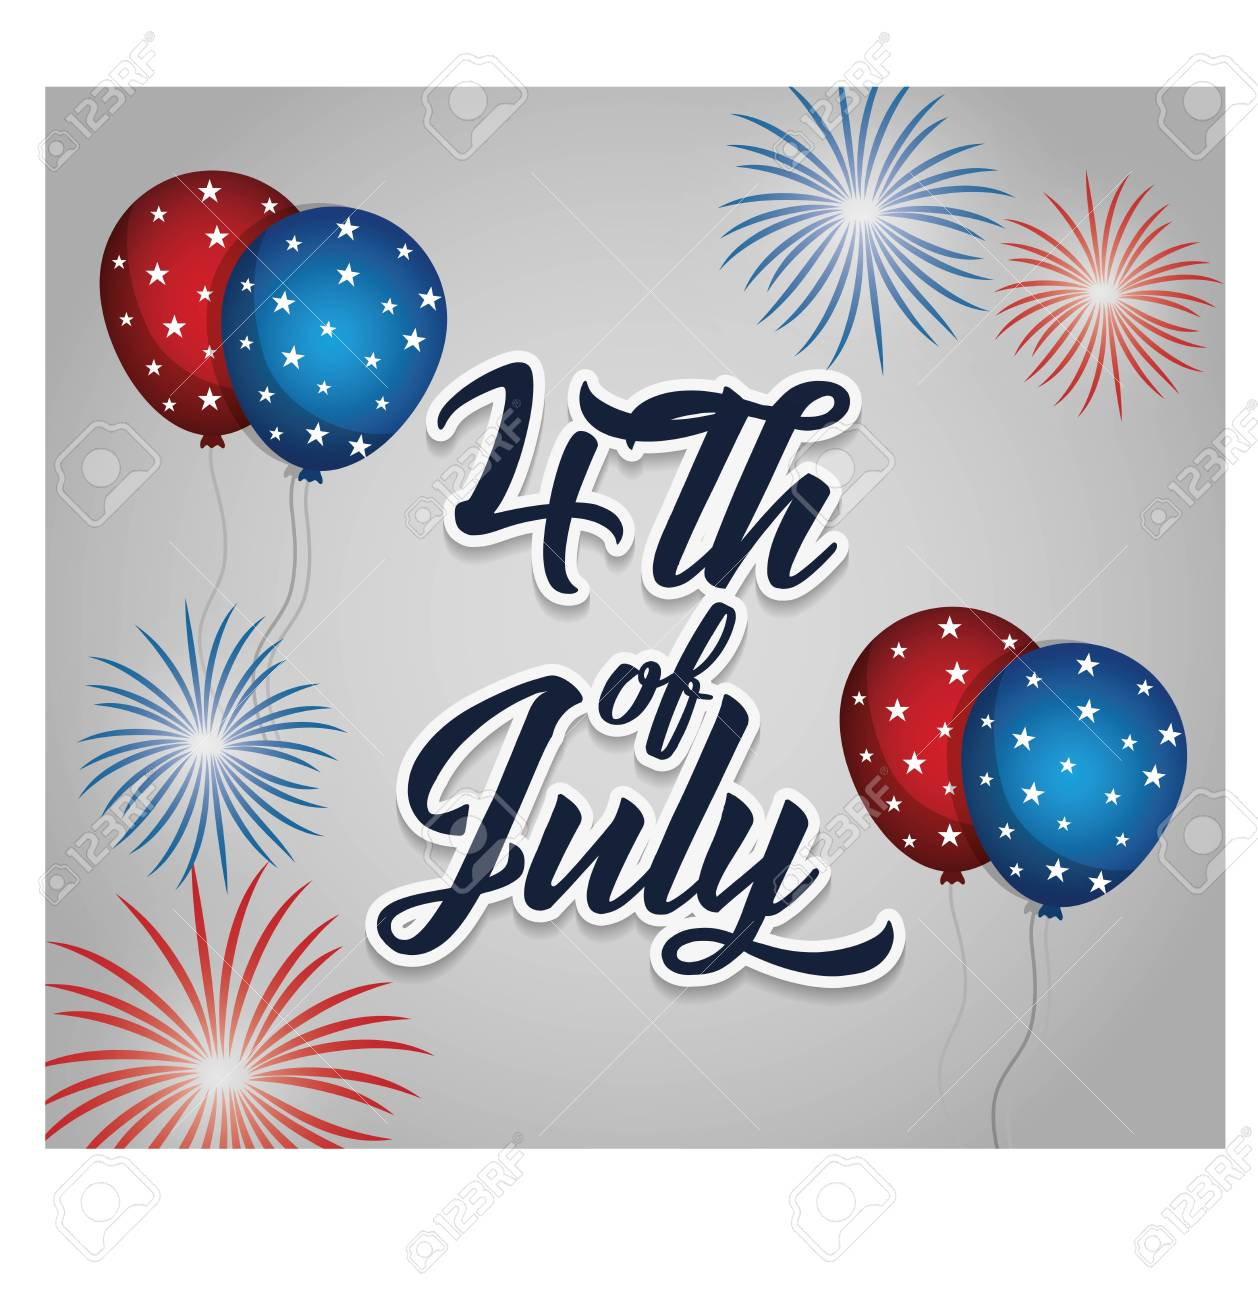 date of usa independence day card with decorative balloons and fireworks burst over gray background